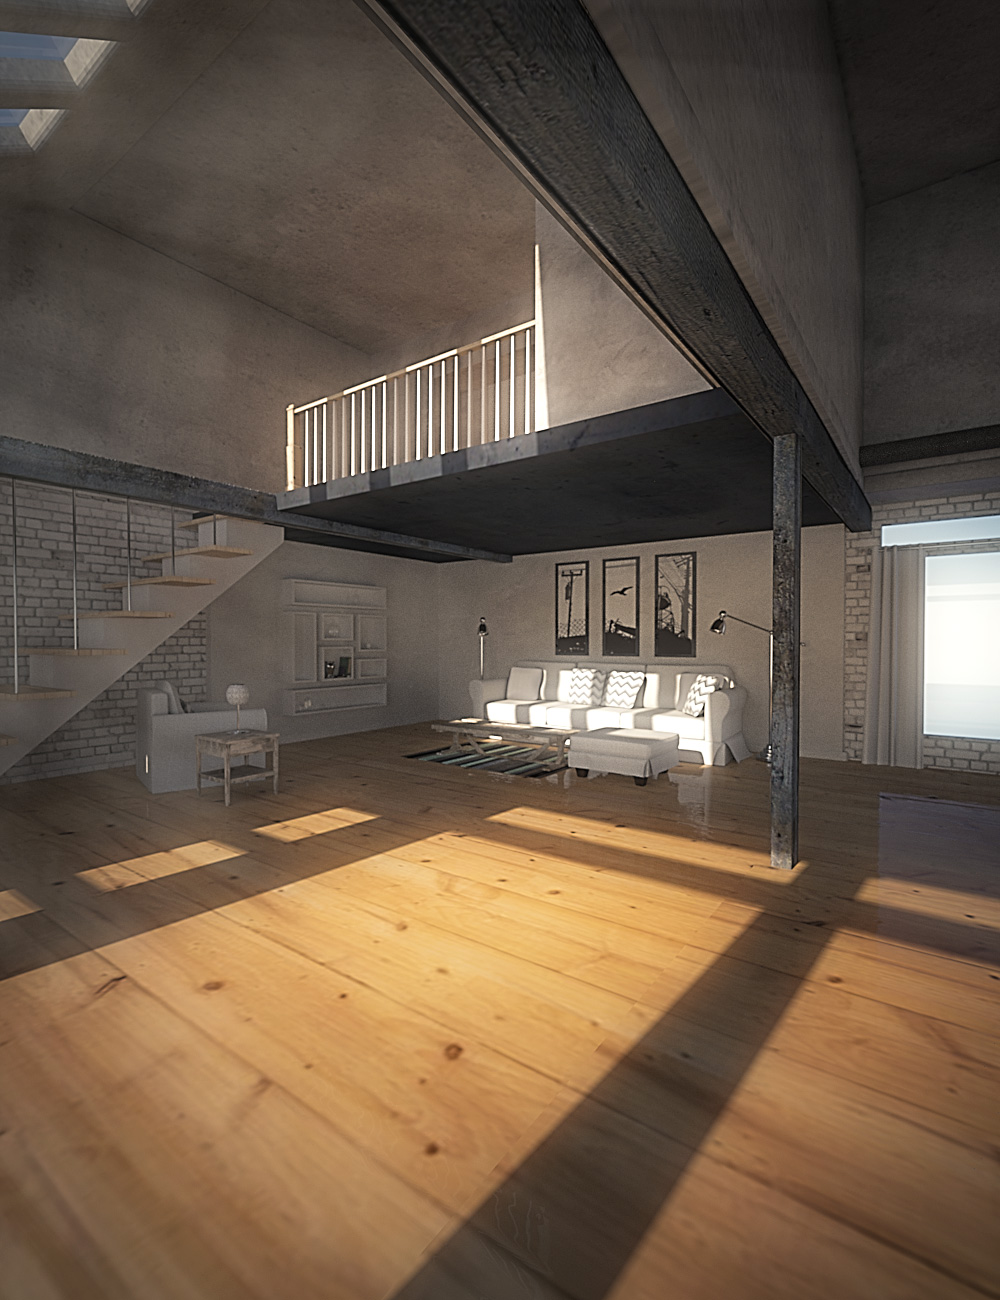 A Bright Loft by: , 3D Models by Daz 3D